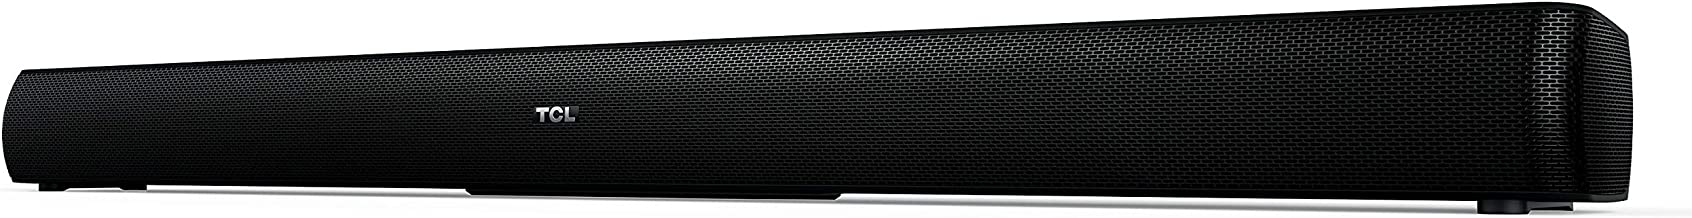 TCL Alto 5 2.0 Channel Home Theater Sound Bar - Ts5000, 32